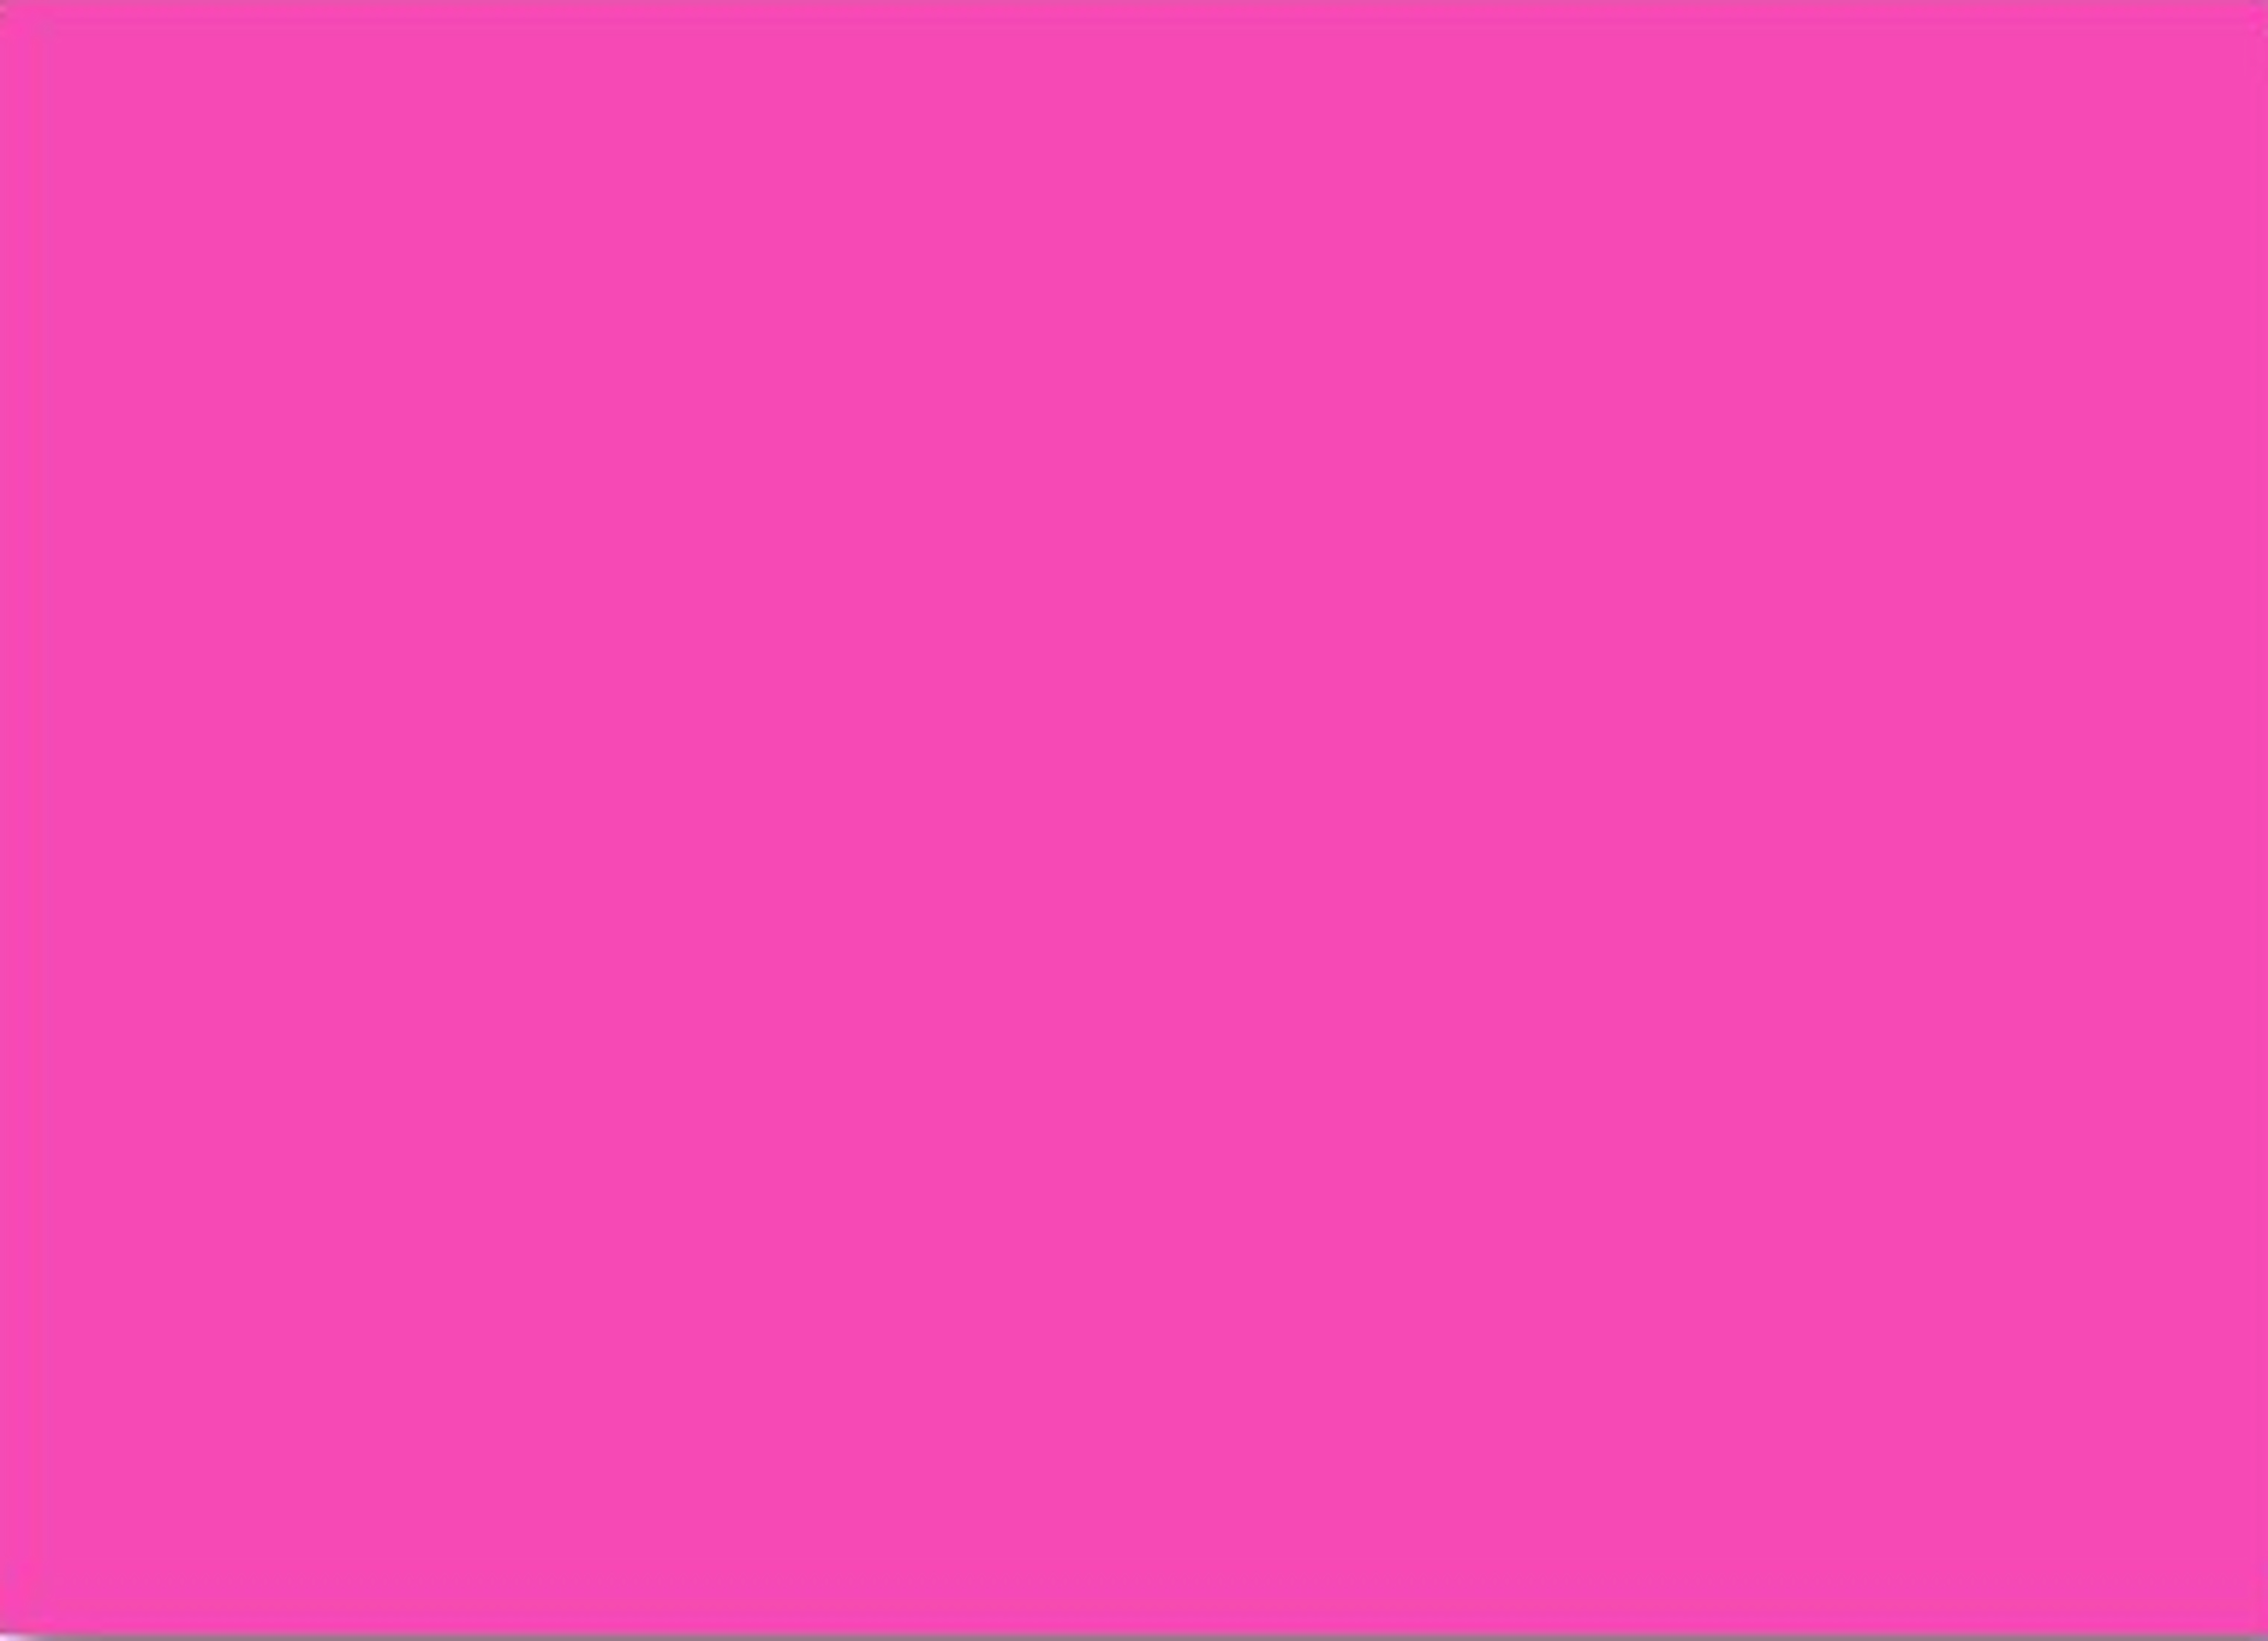 Plain Hot Pink Color Background Images Pictures   Becuo 7148x5173